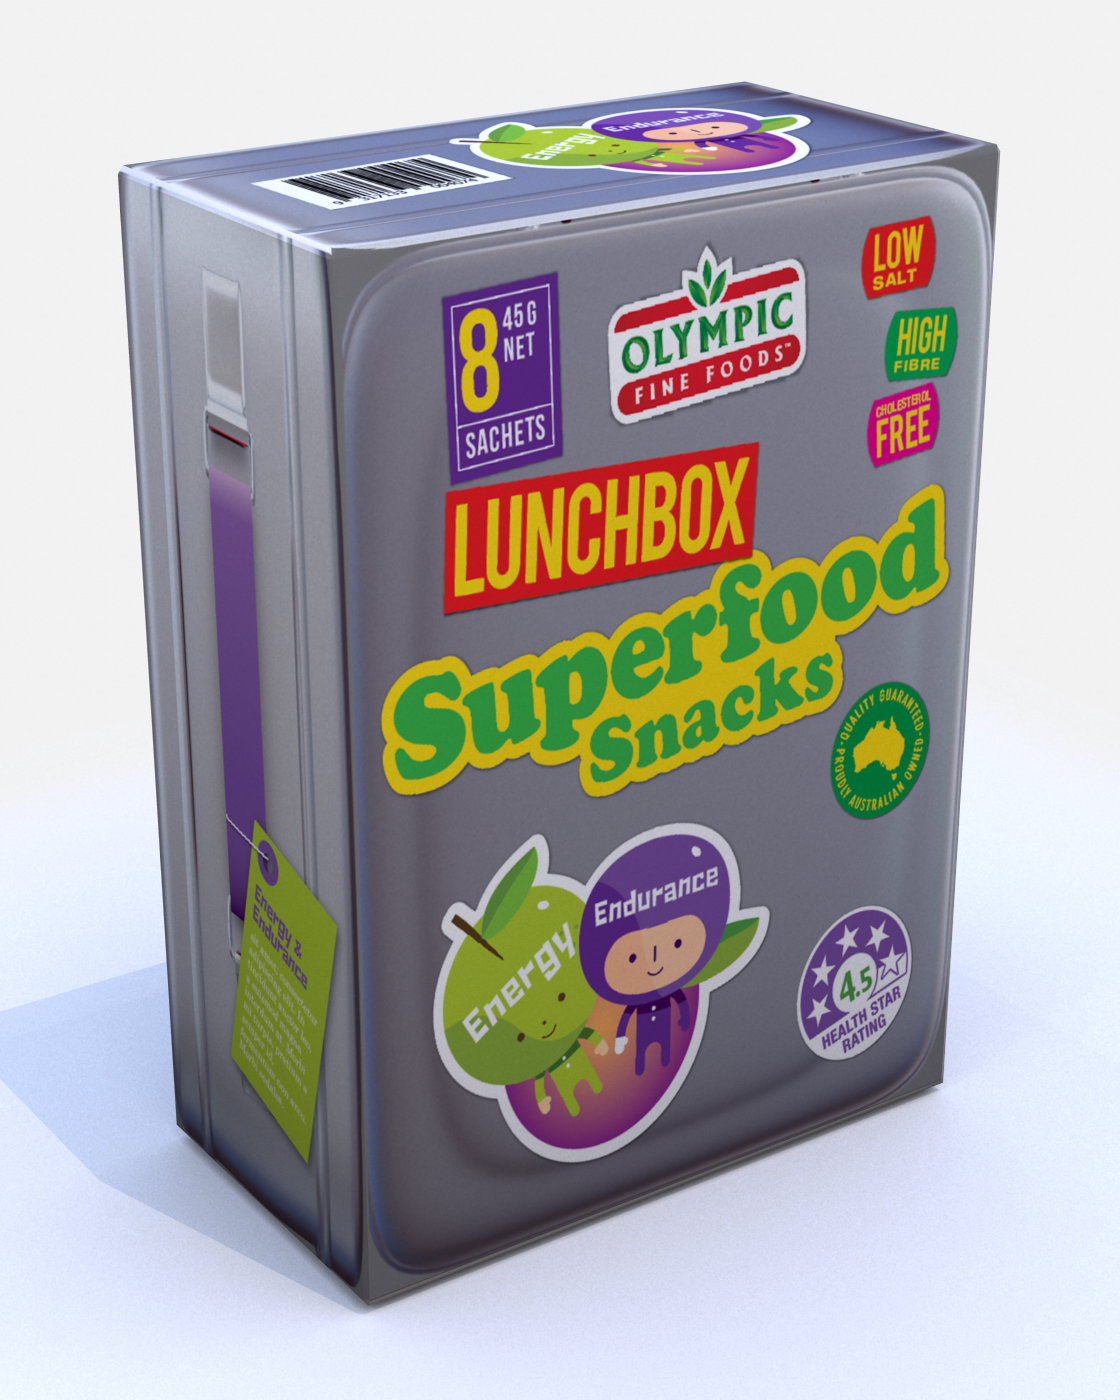 Lunchbox Superfoods – Energy & Endurance